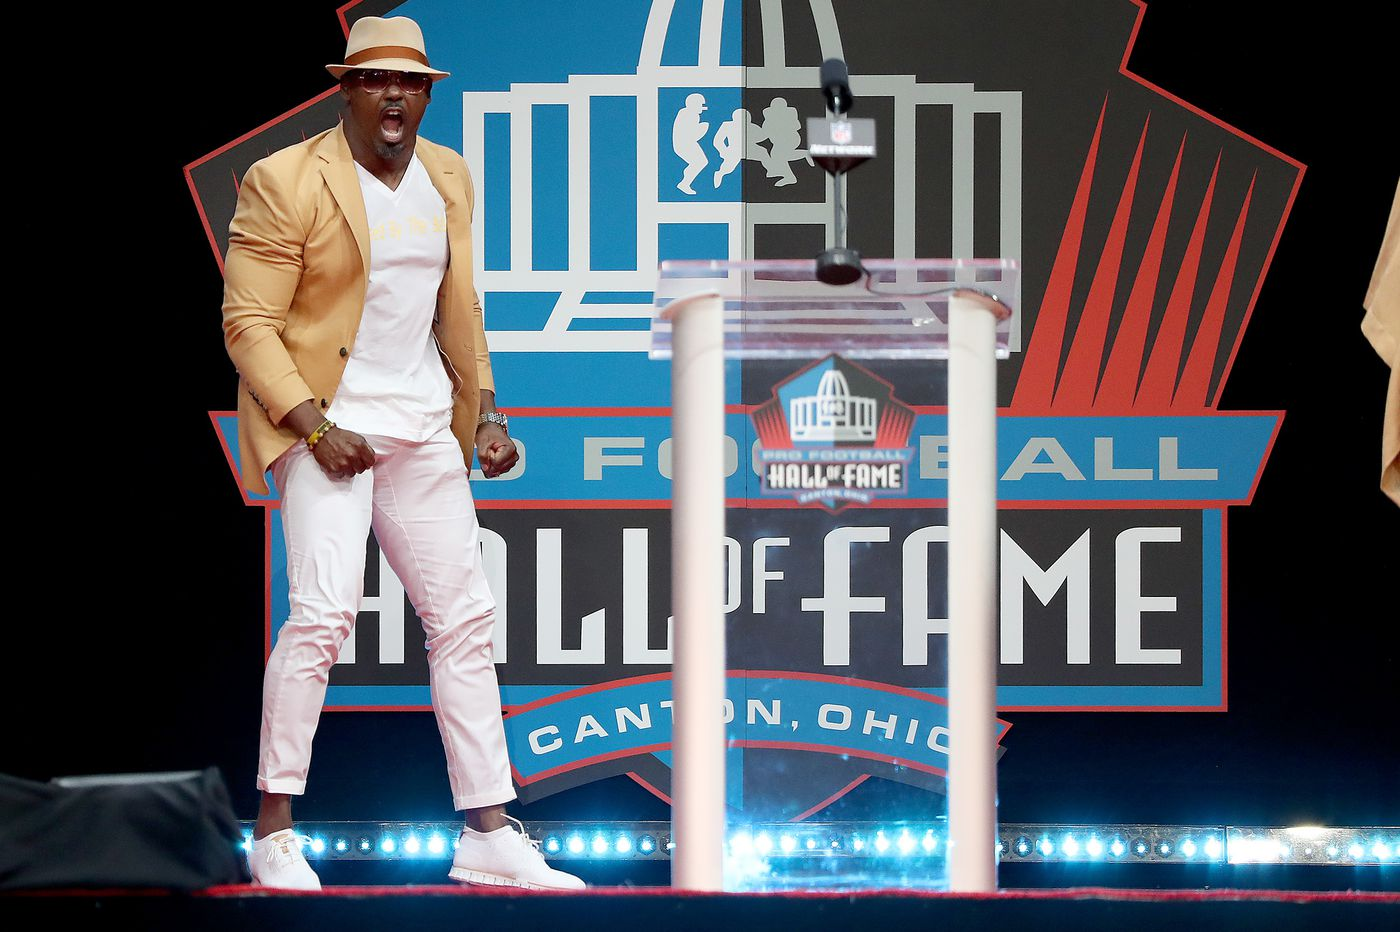 Brian Dawkins enters Pro Football Hall of Fame, becomes eighth Eagles player to unveil bust